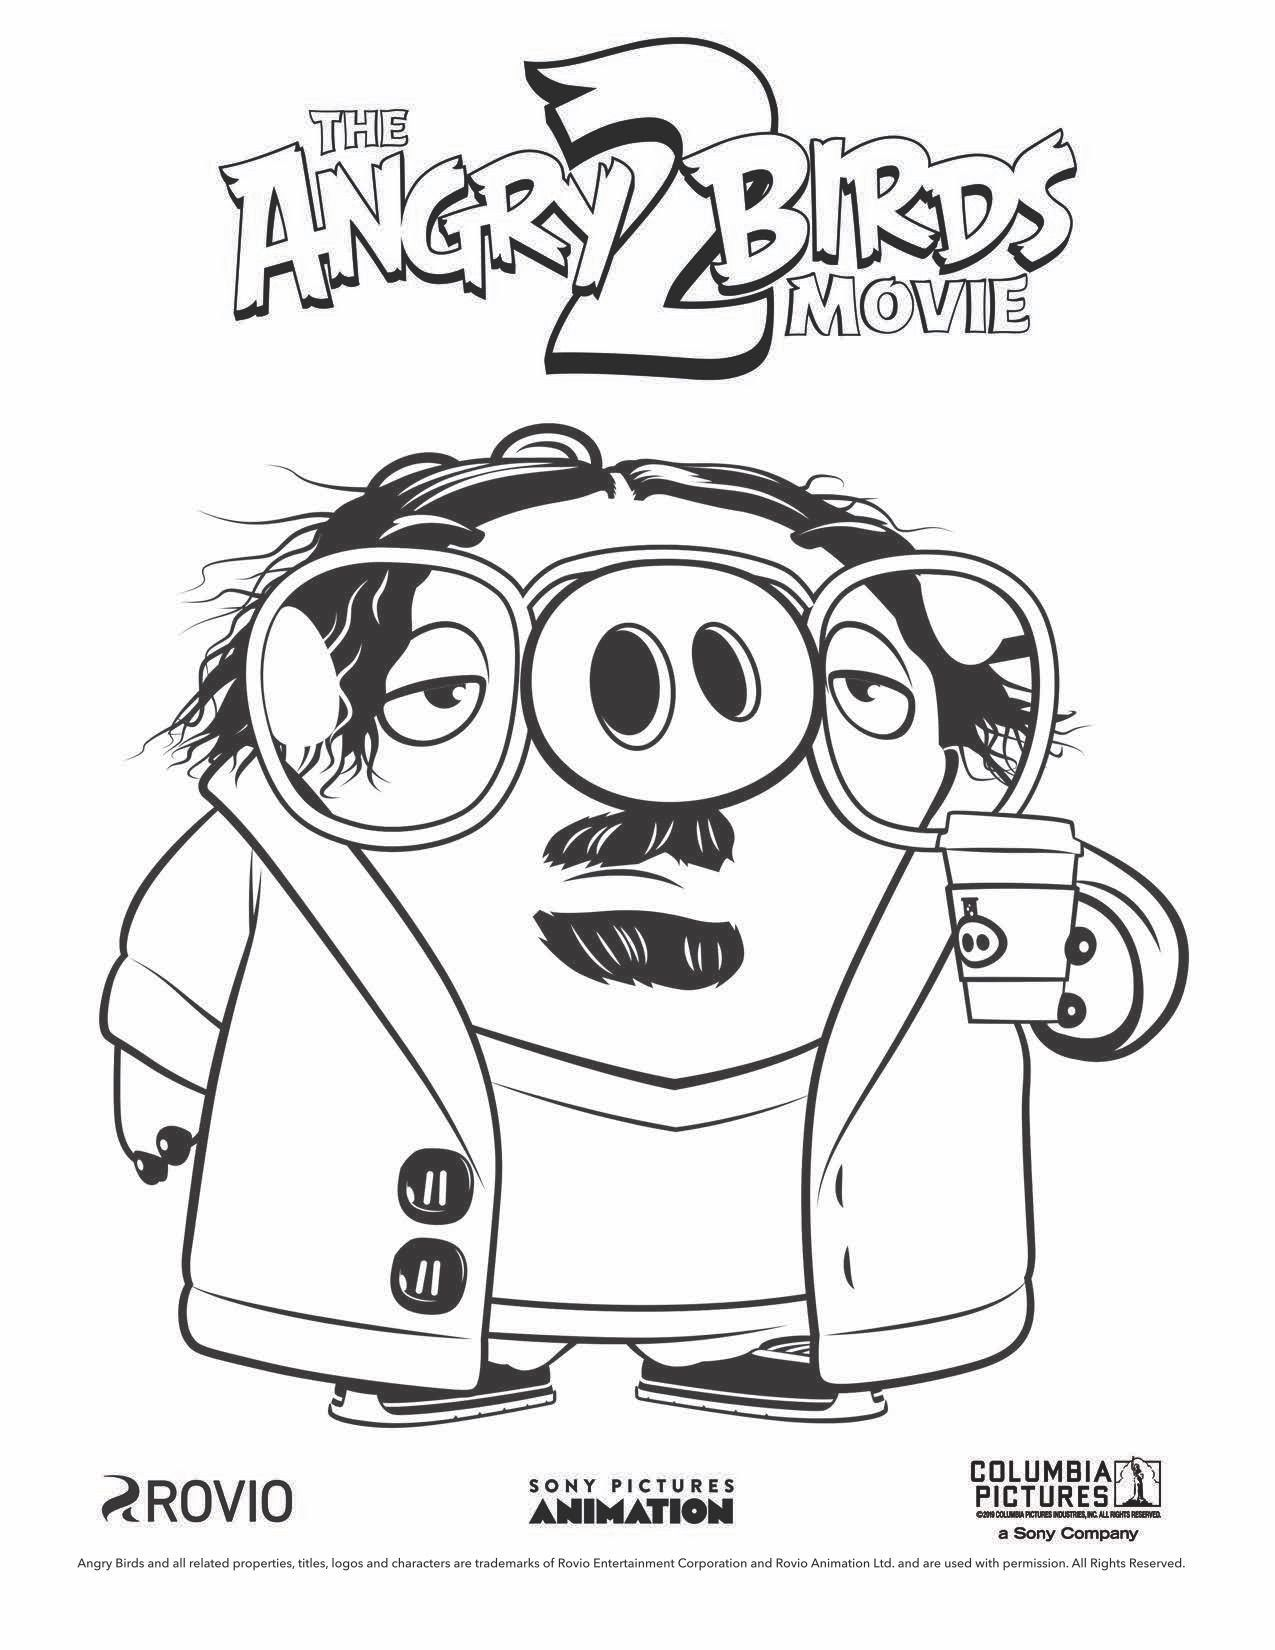 Free Angry Birds Coloring Pages Print Out This Coloring Page To Create An Im Peck Able Work In 2020 Bird Coloring Pages Space Coloring Pages Christmas Coloring Pages